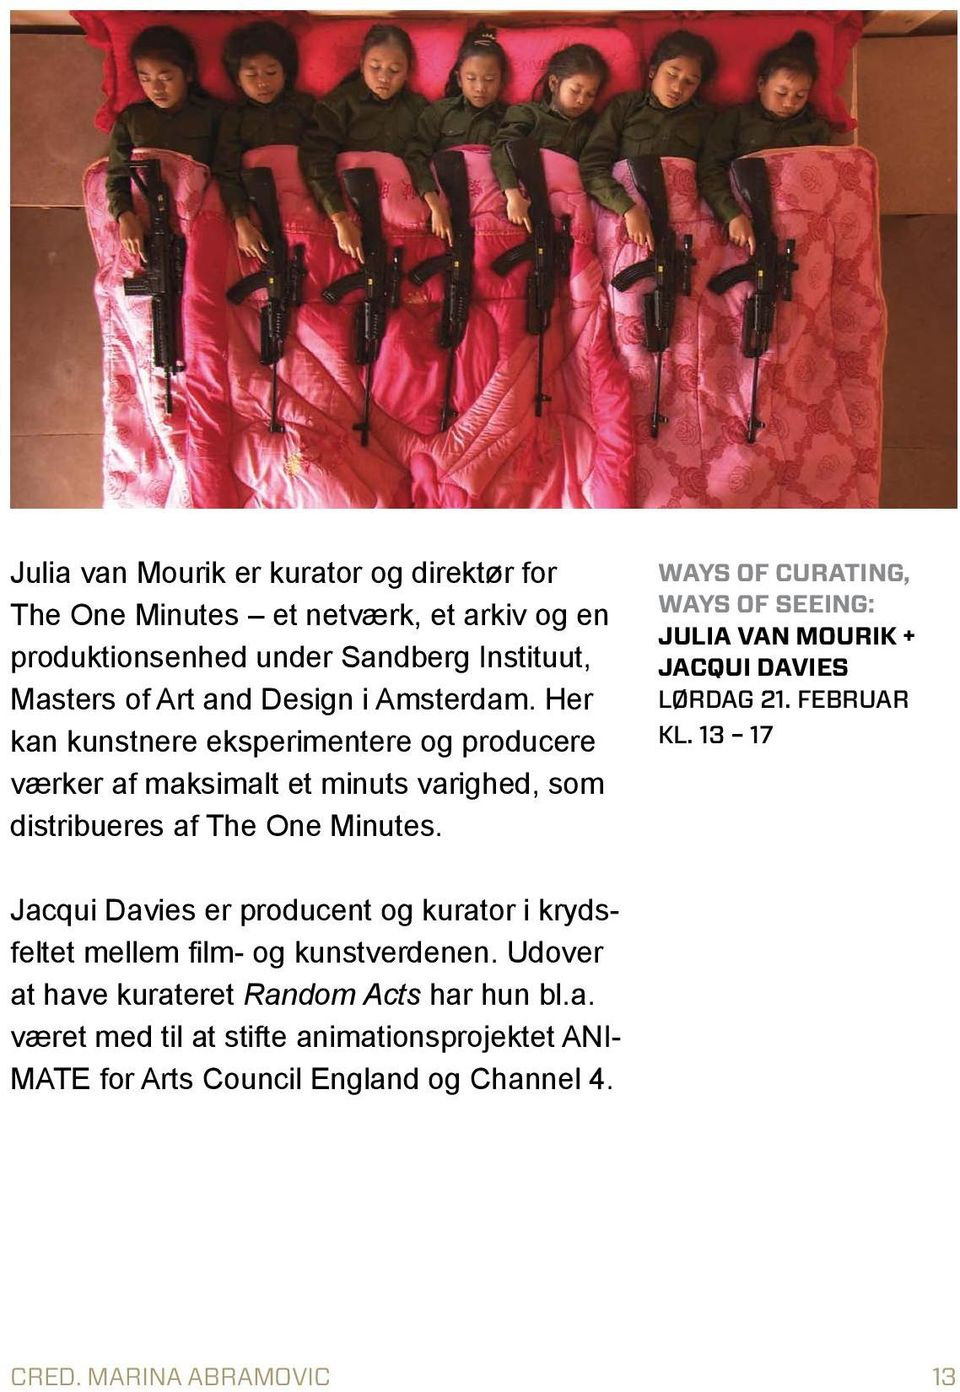 WAYS OF CURATING, WAYS OF SEEING: JULIA VAN MOURIK + JACQUI DAVIES Lørdag 21. februar KL.